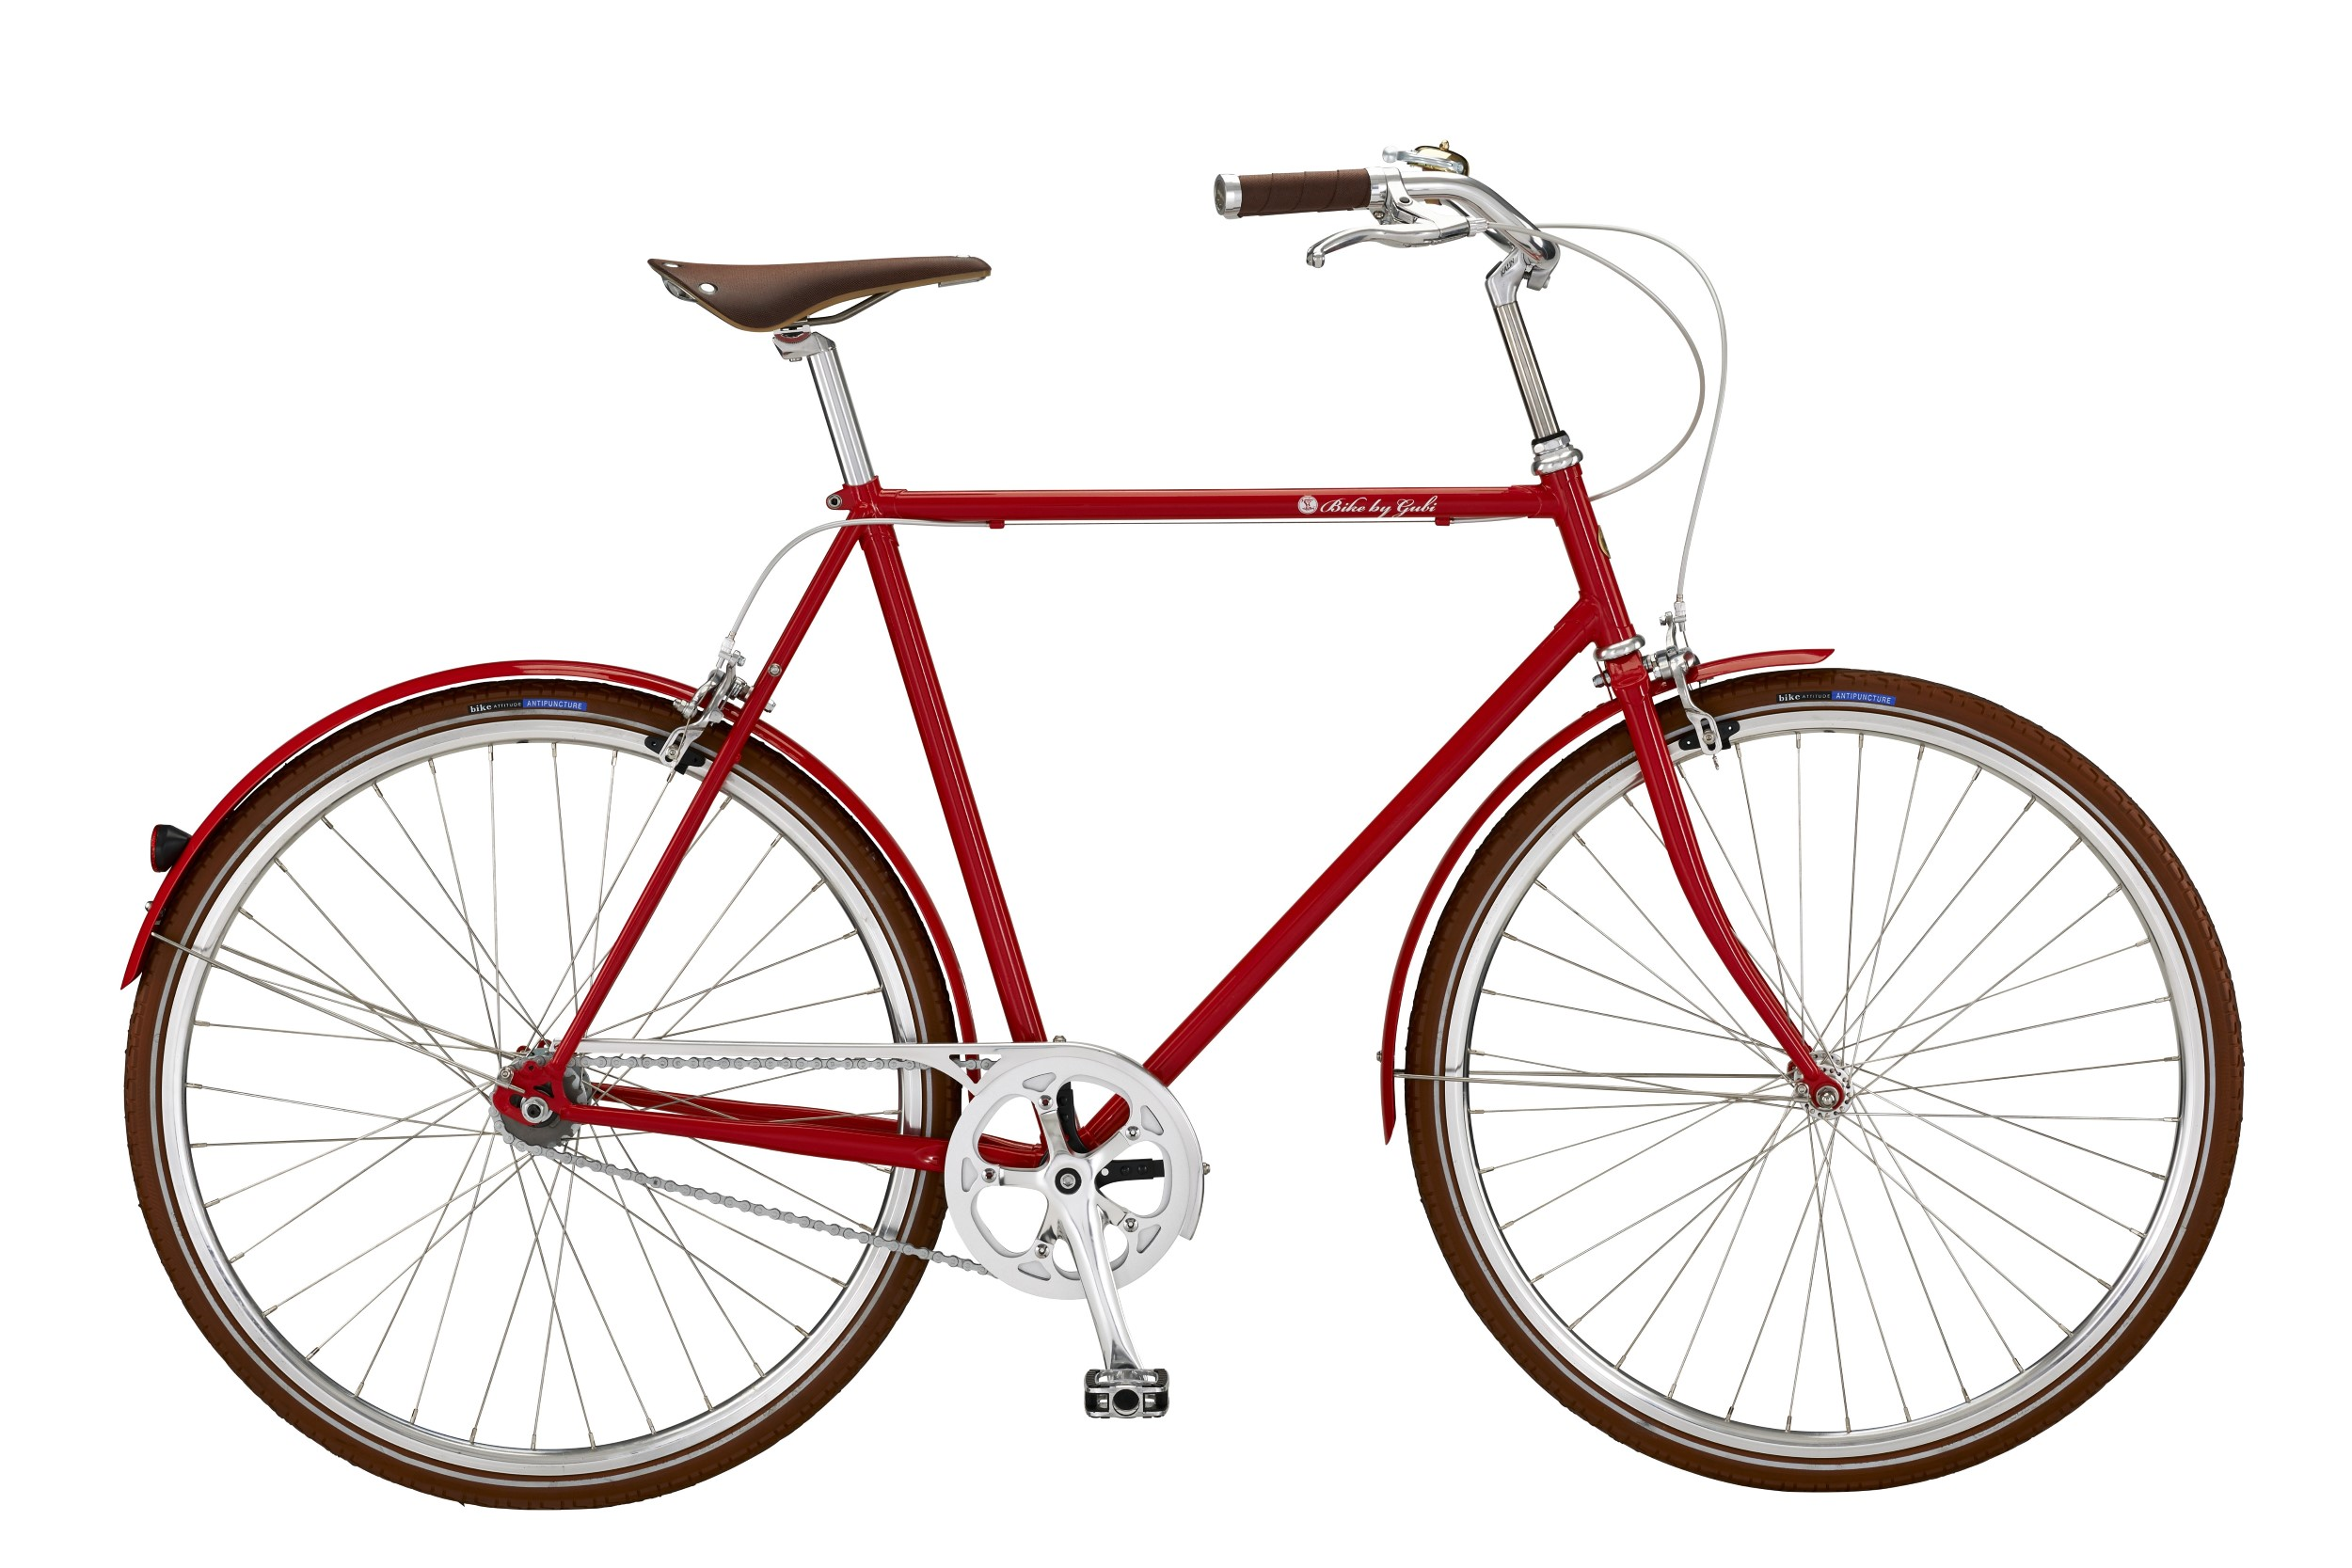 Bike by Gubi Herre 2 Auto Gear - Red Nelson 2018